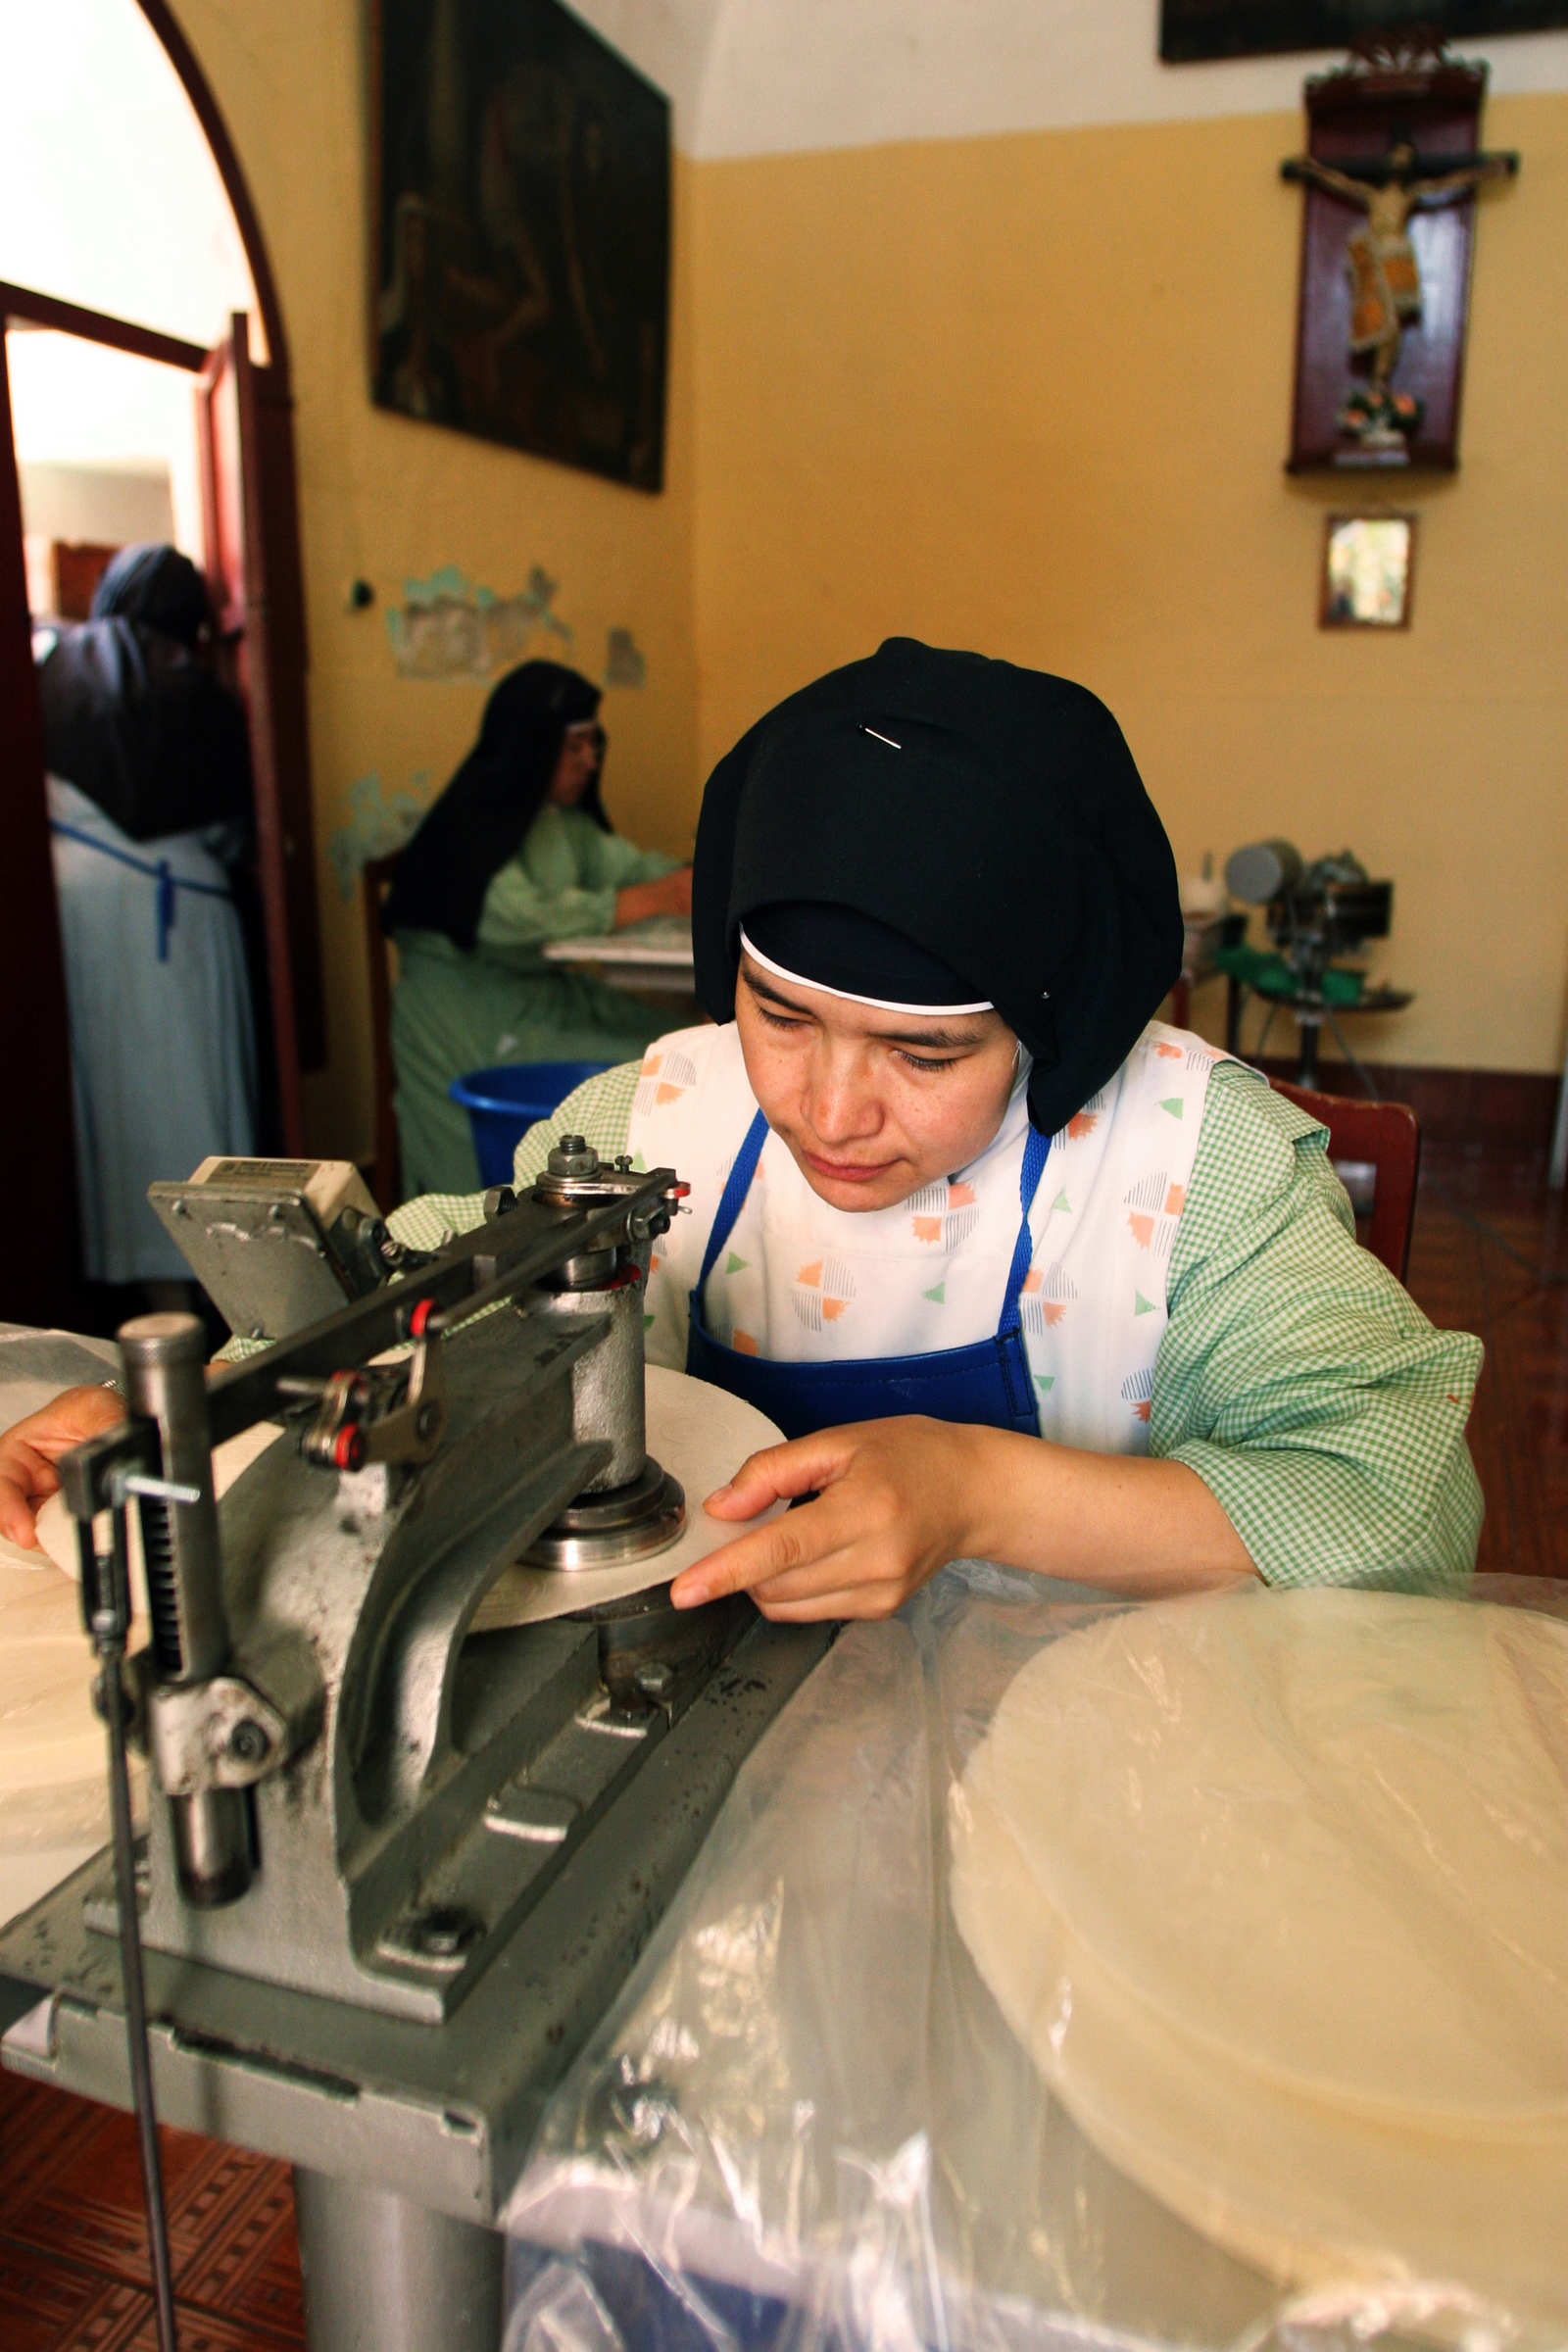 The nuns of the monastery make the unleavened bread for the local cathedral.